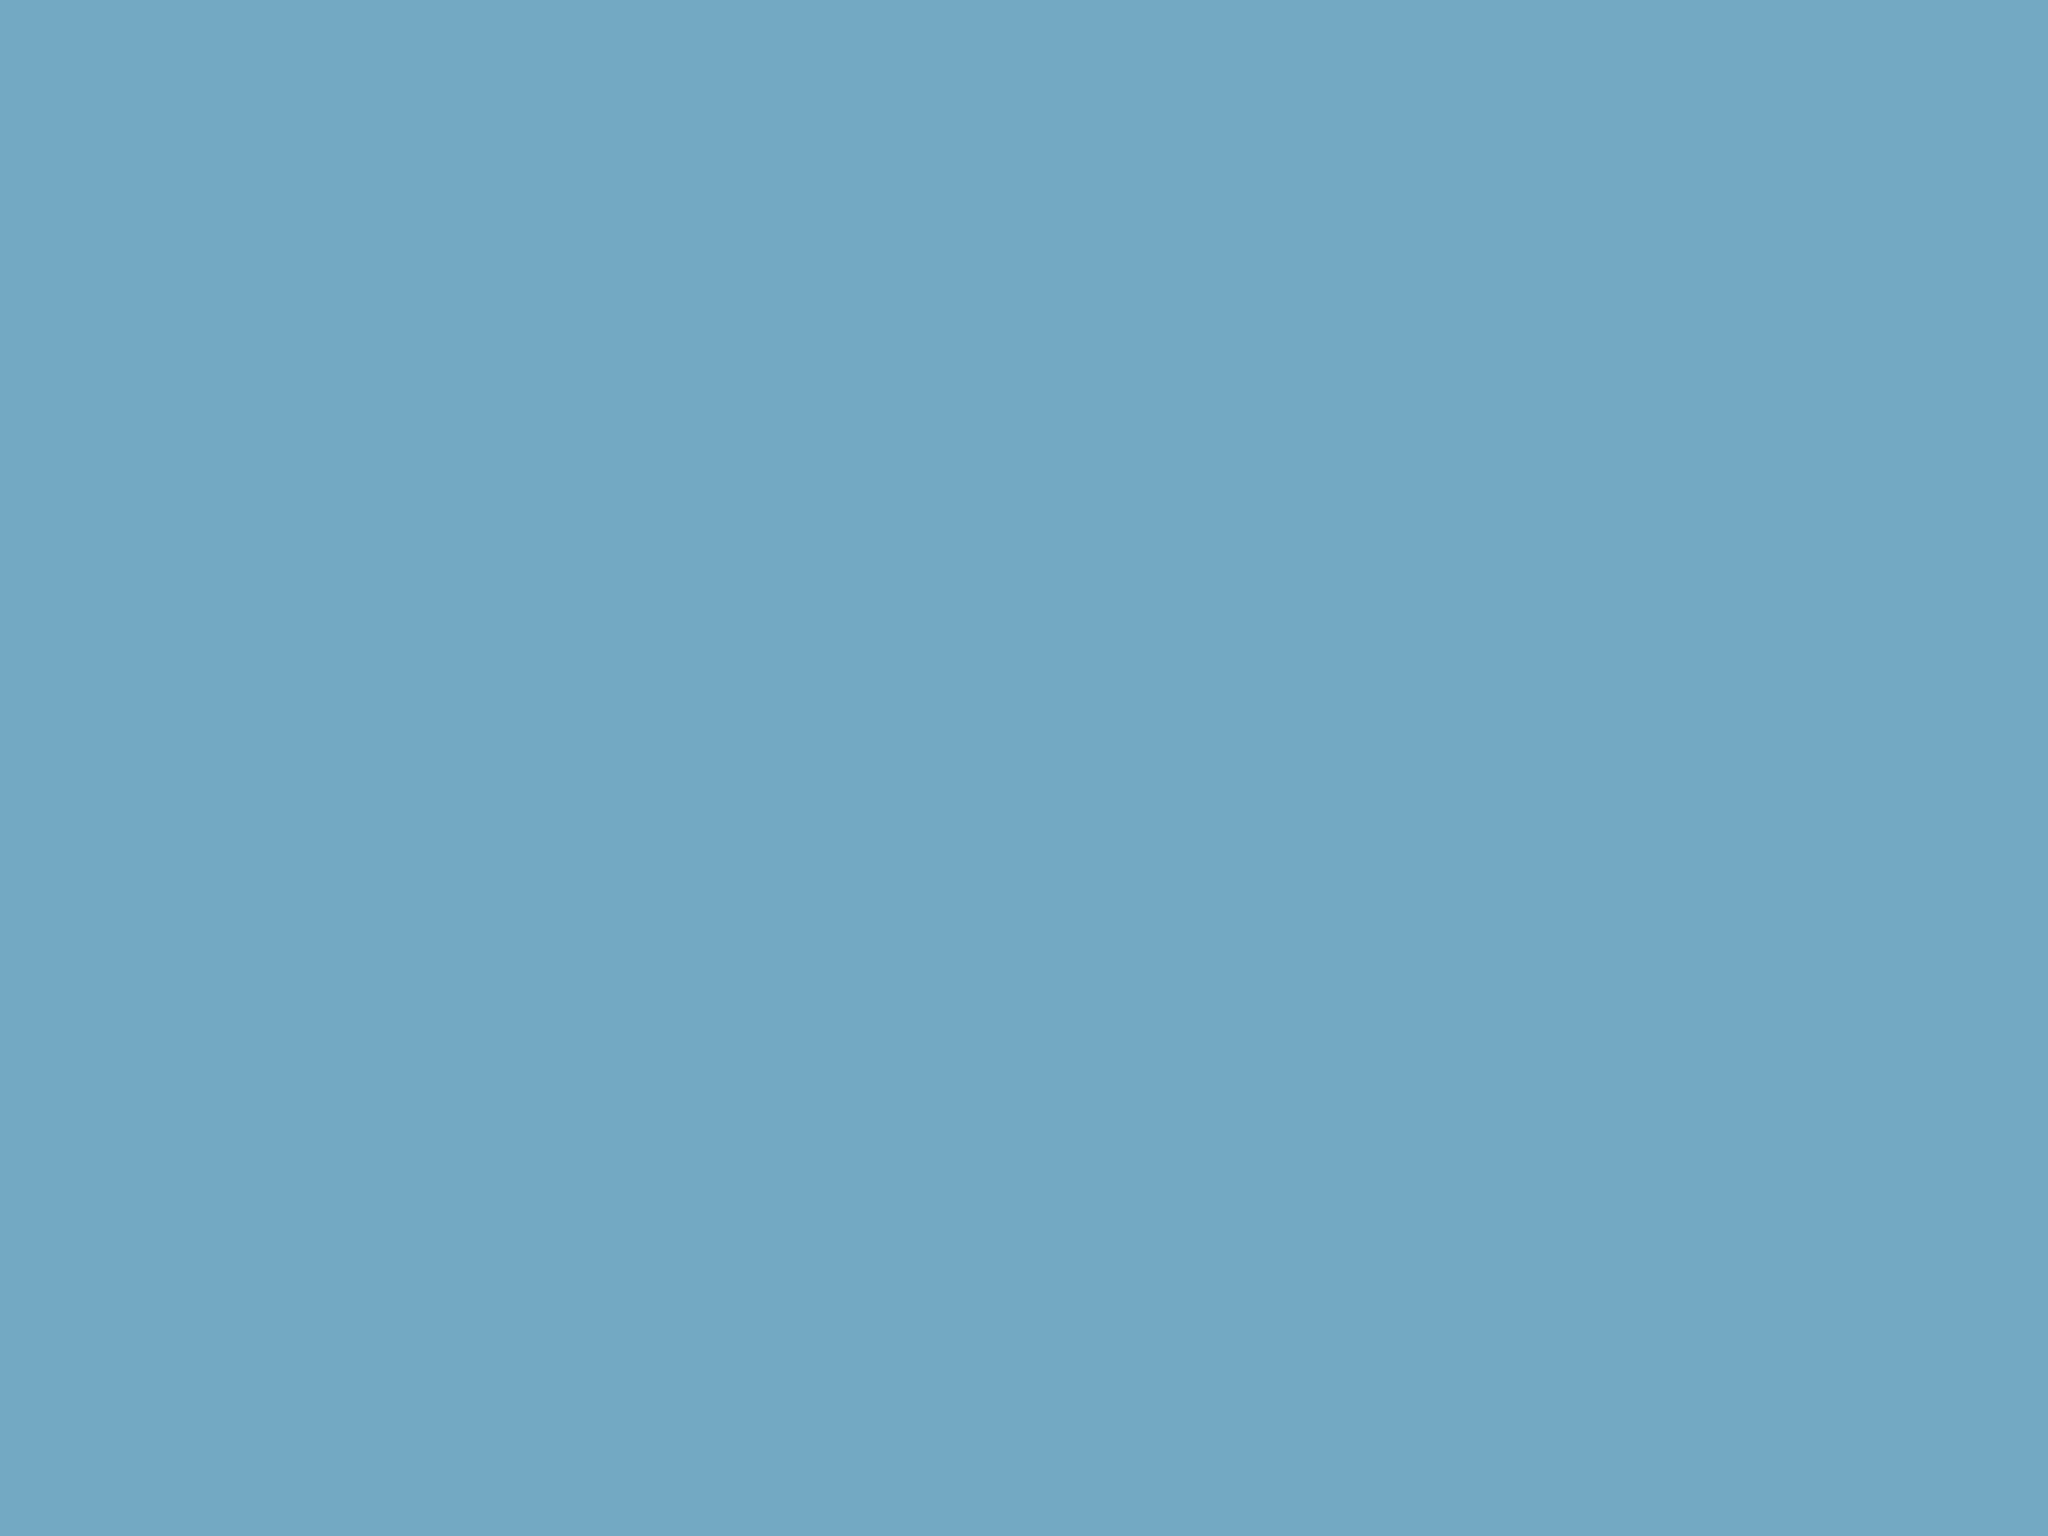 2048x1536 Moonstone Blue Solid Color Background